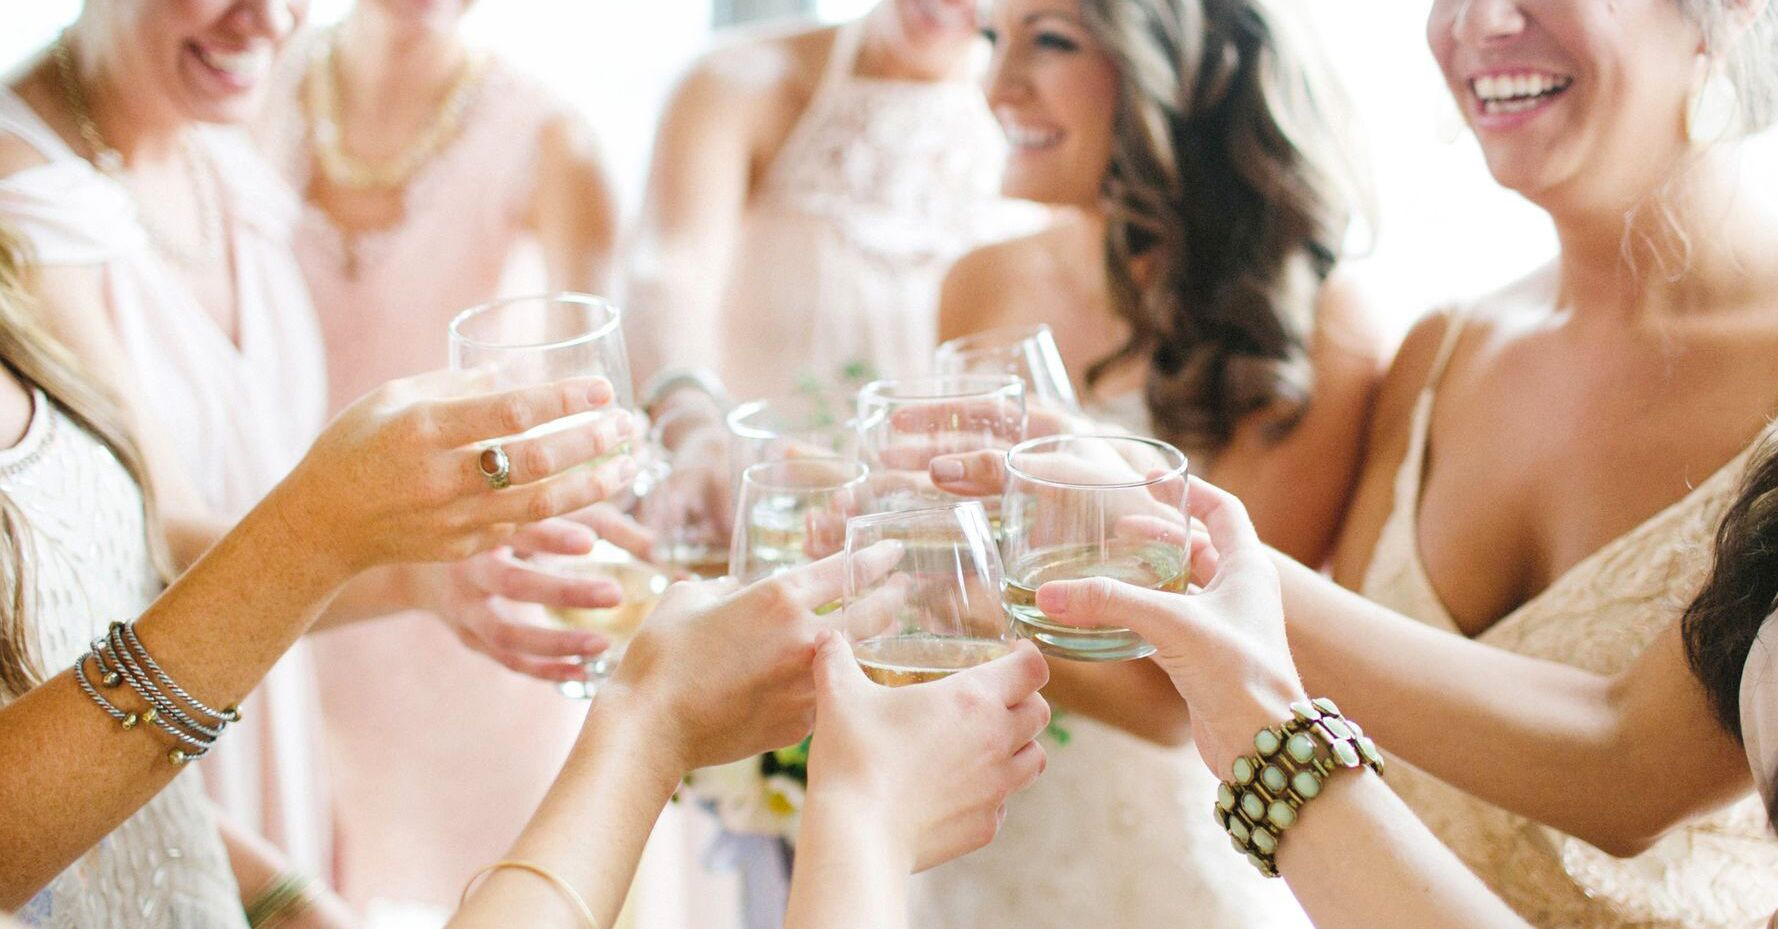 25 famous wedding toast quotes for the maid of honor speech